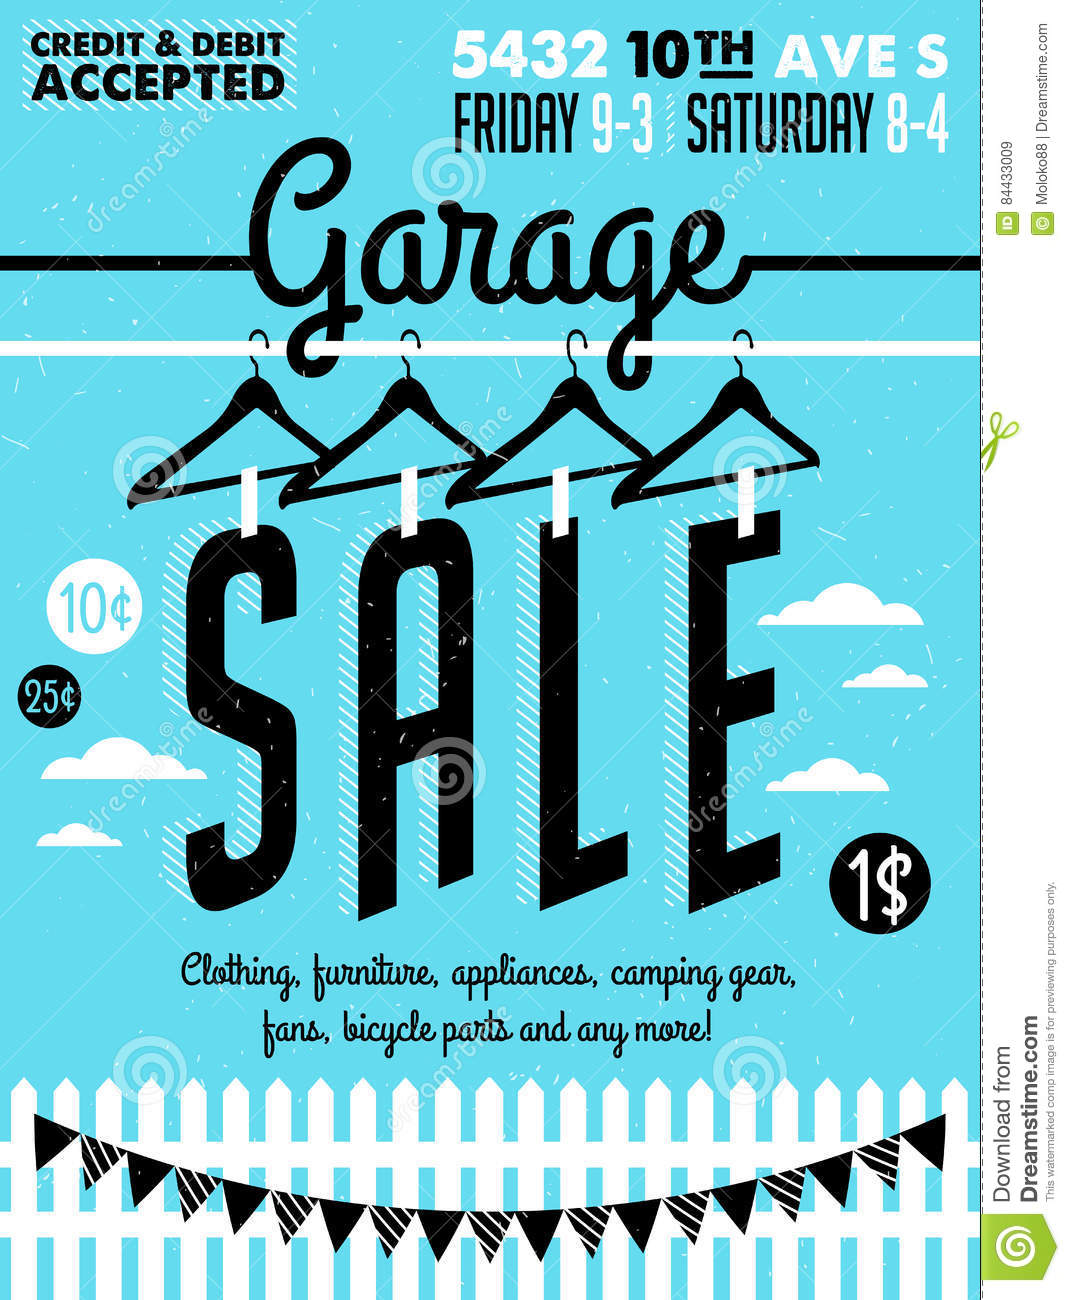 graphic about Printable Camping Signs named Garage Sale Poster inventory vector. Case in point of poster